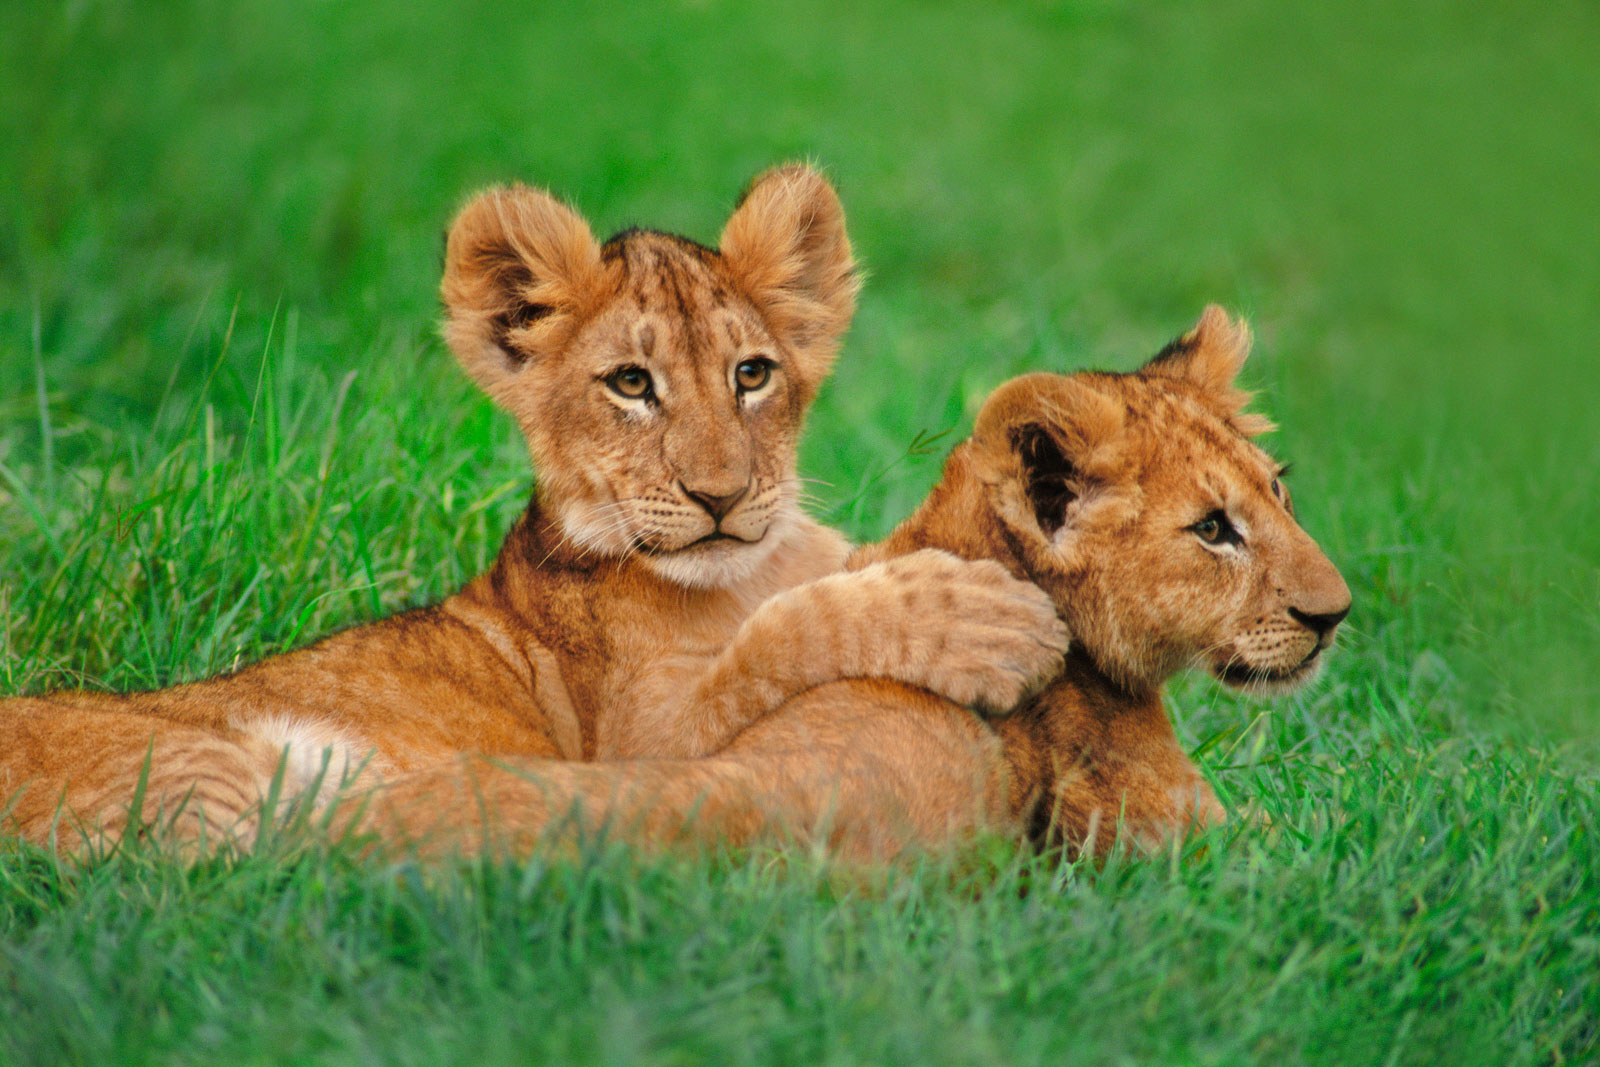 Lion cubs playing, Masai Mara National Reserve, Kenya